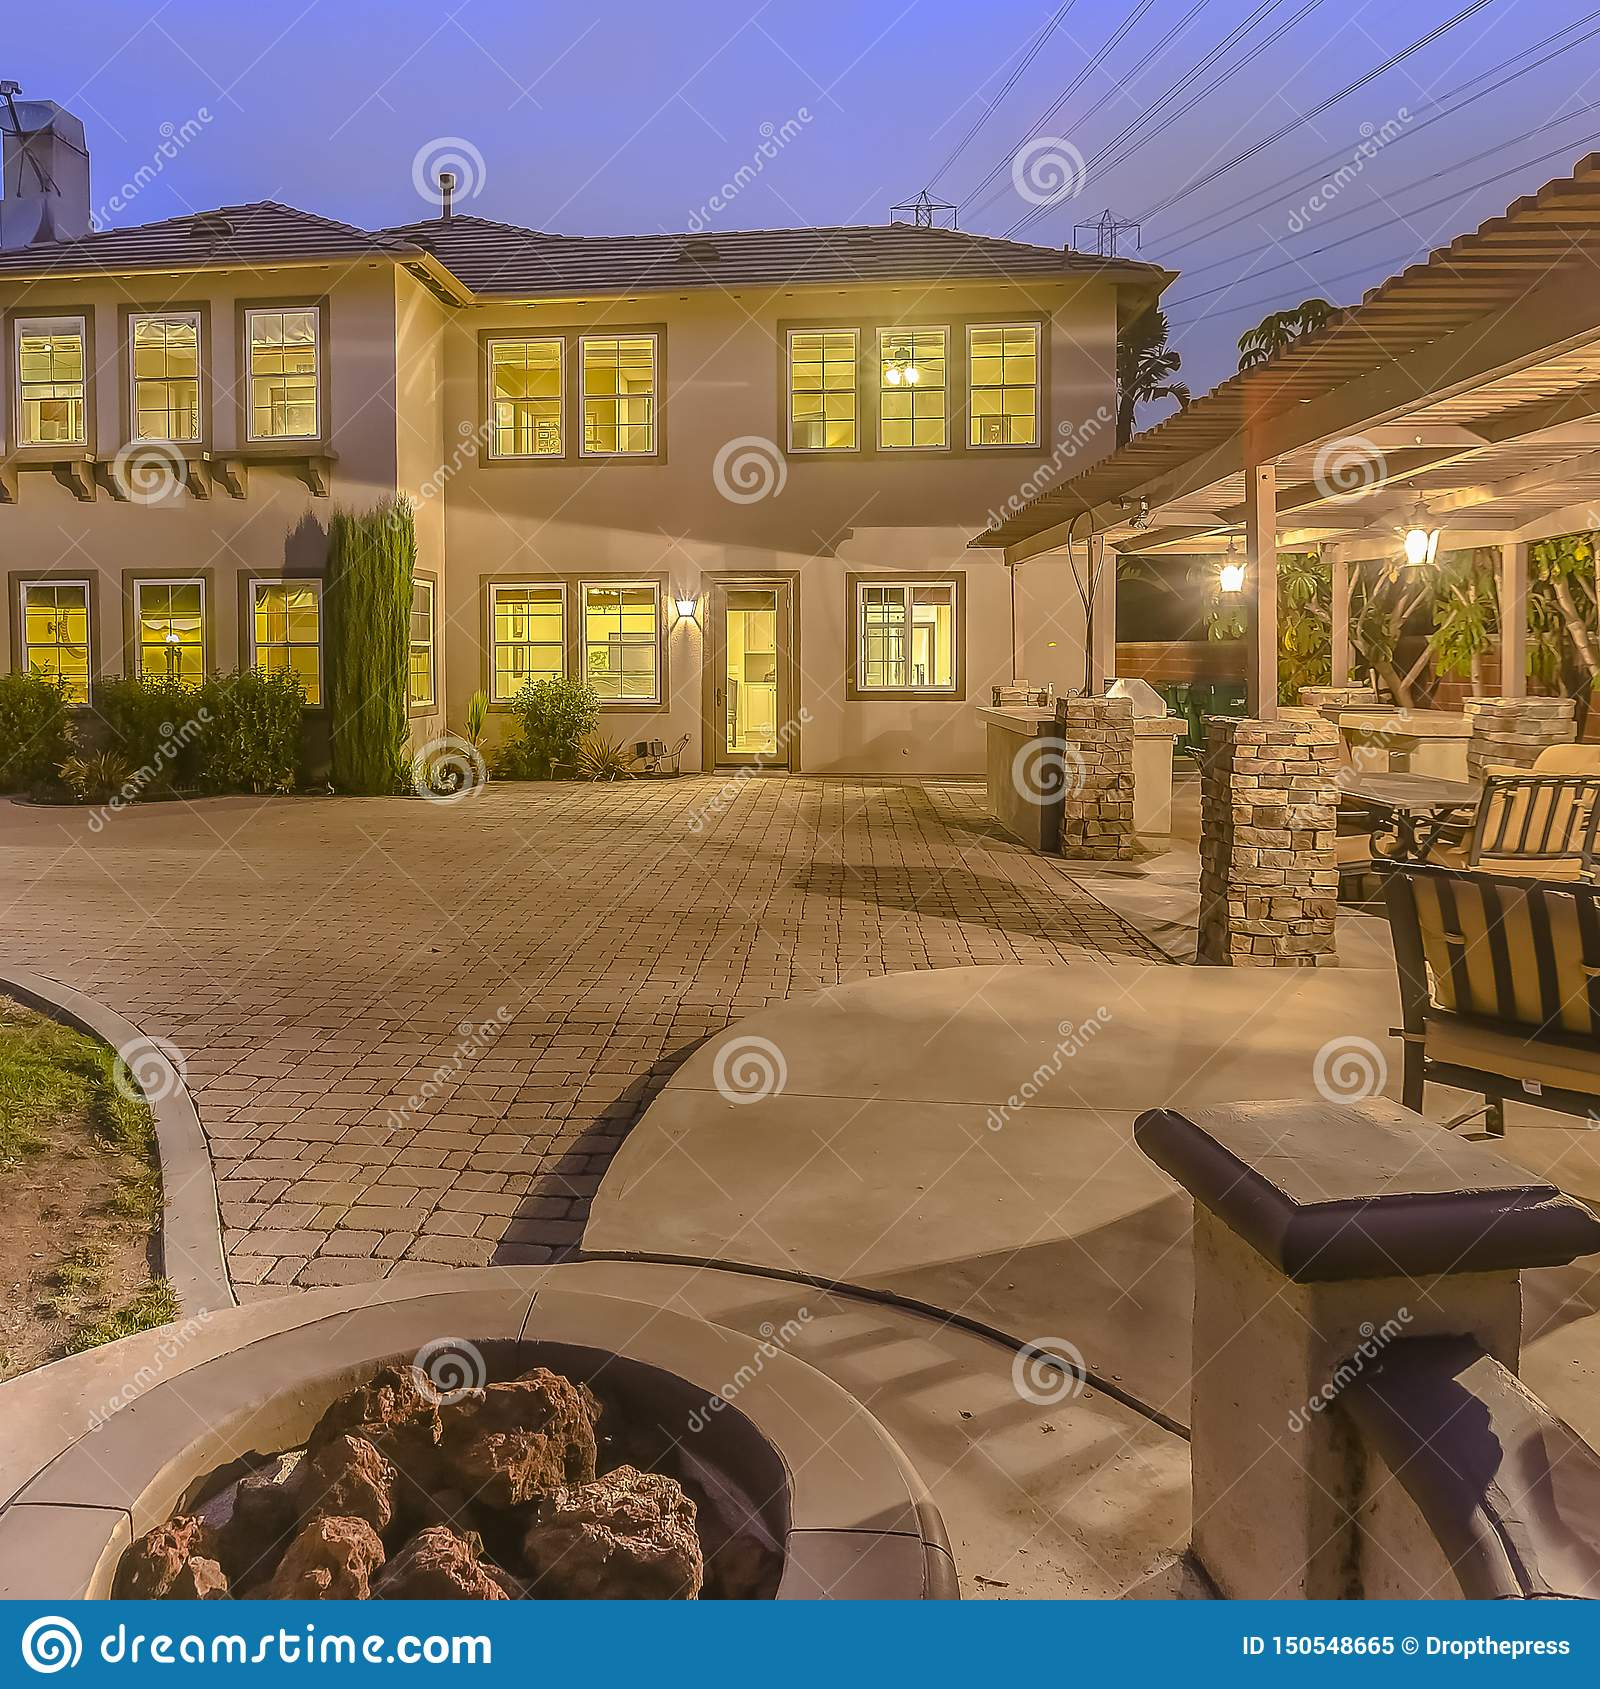 Square Illuminated House With A Patio Accomodating An Outdoor Dining Area And Fire Pit Stock Image Image Of Bench Plants 150548665